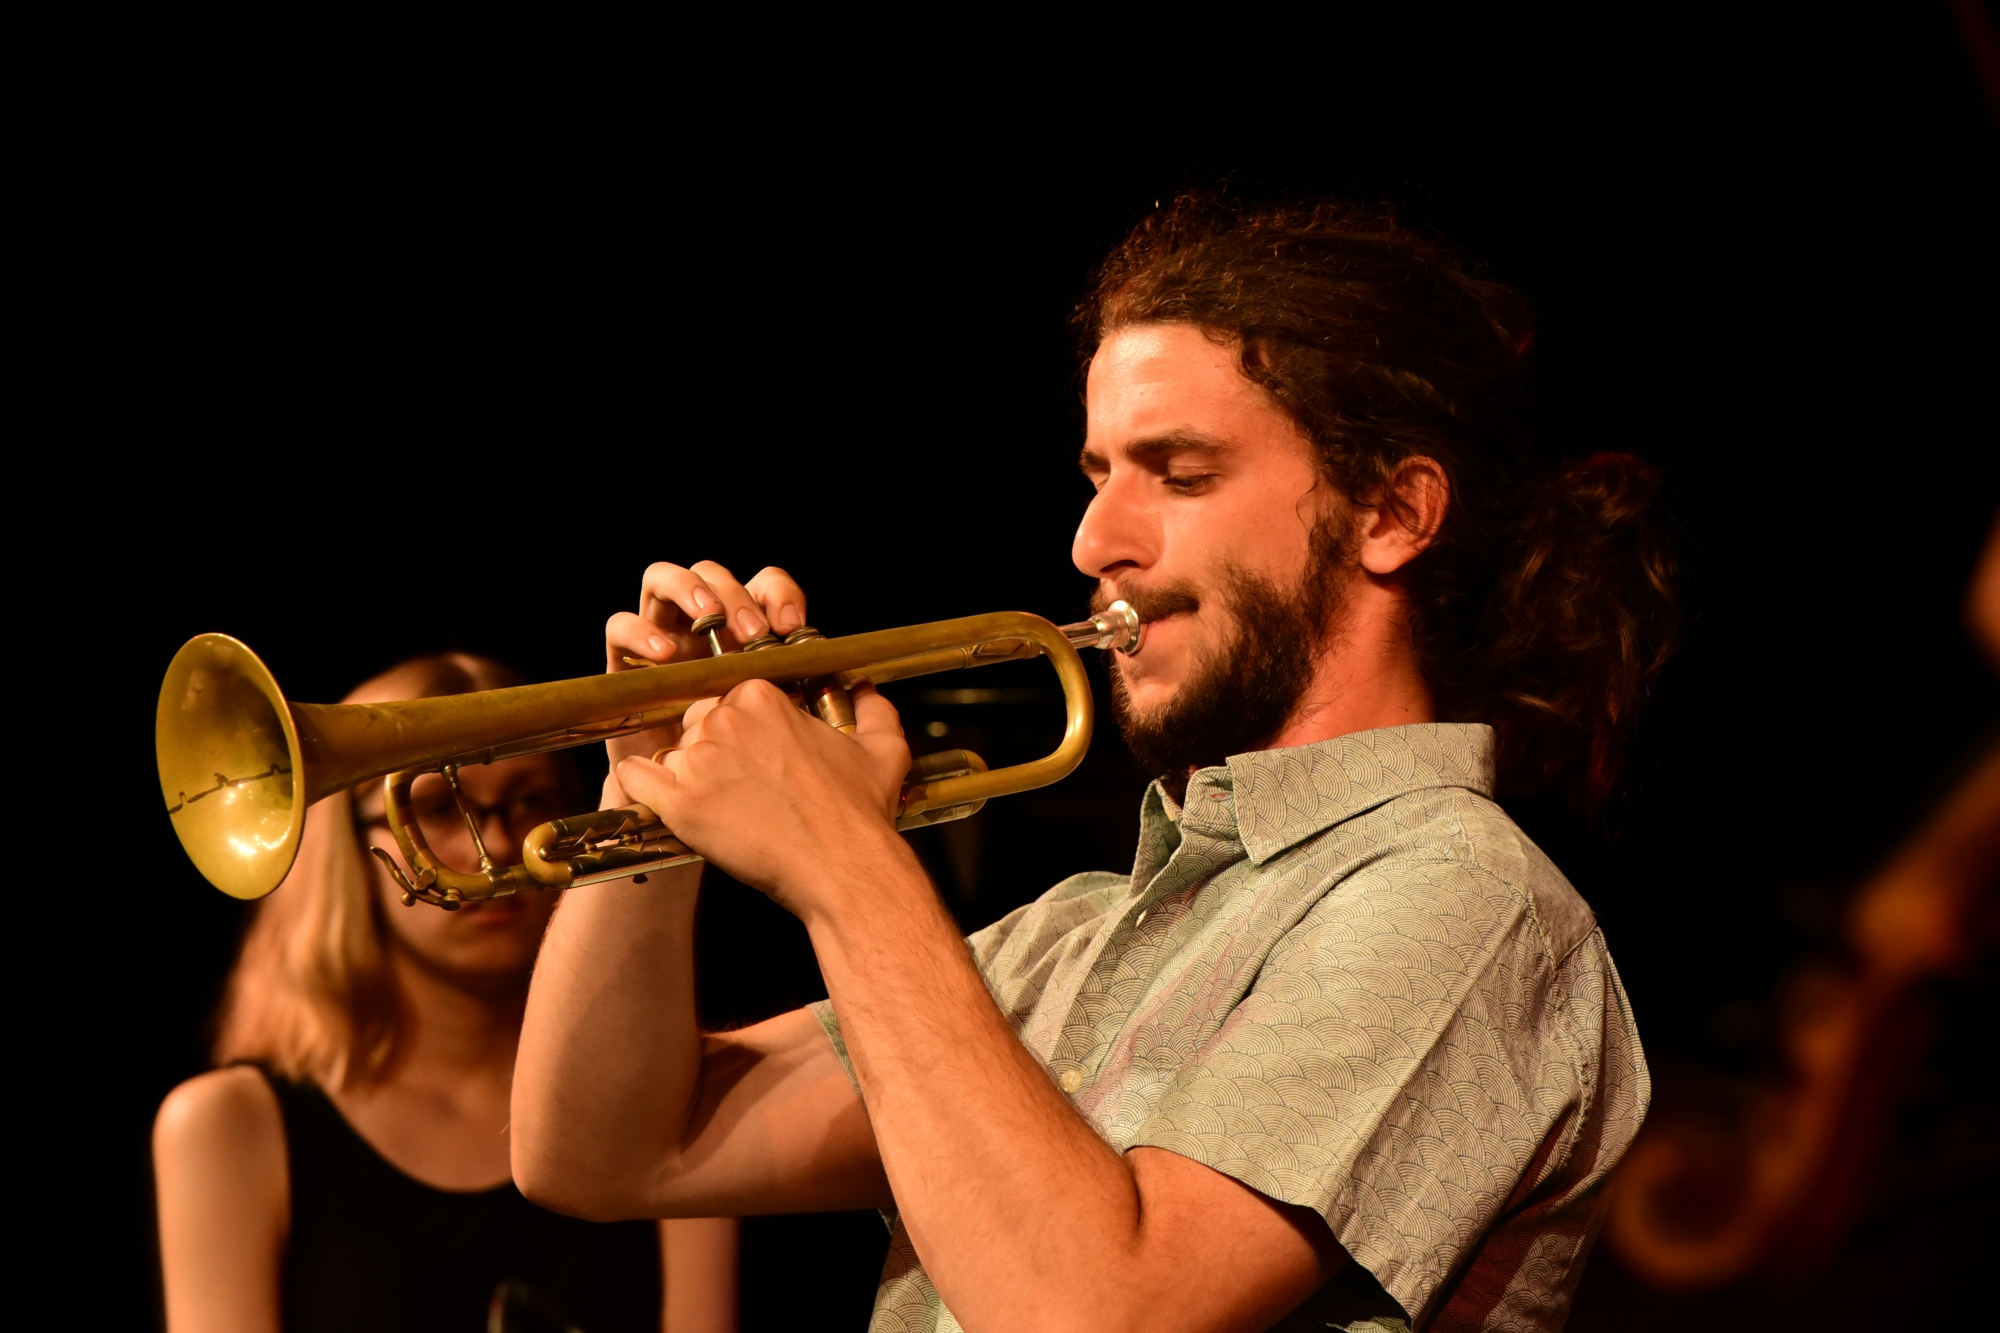 Out of the kitchen: Alex Quin - trumpet